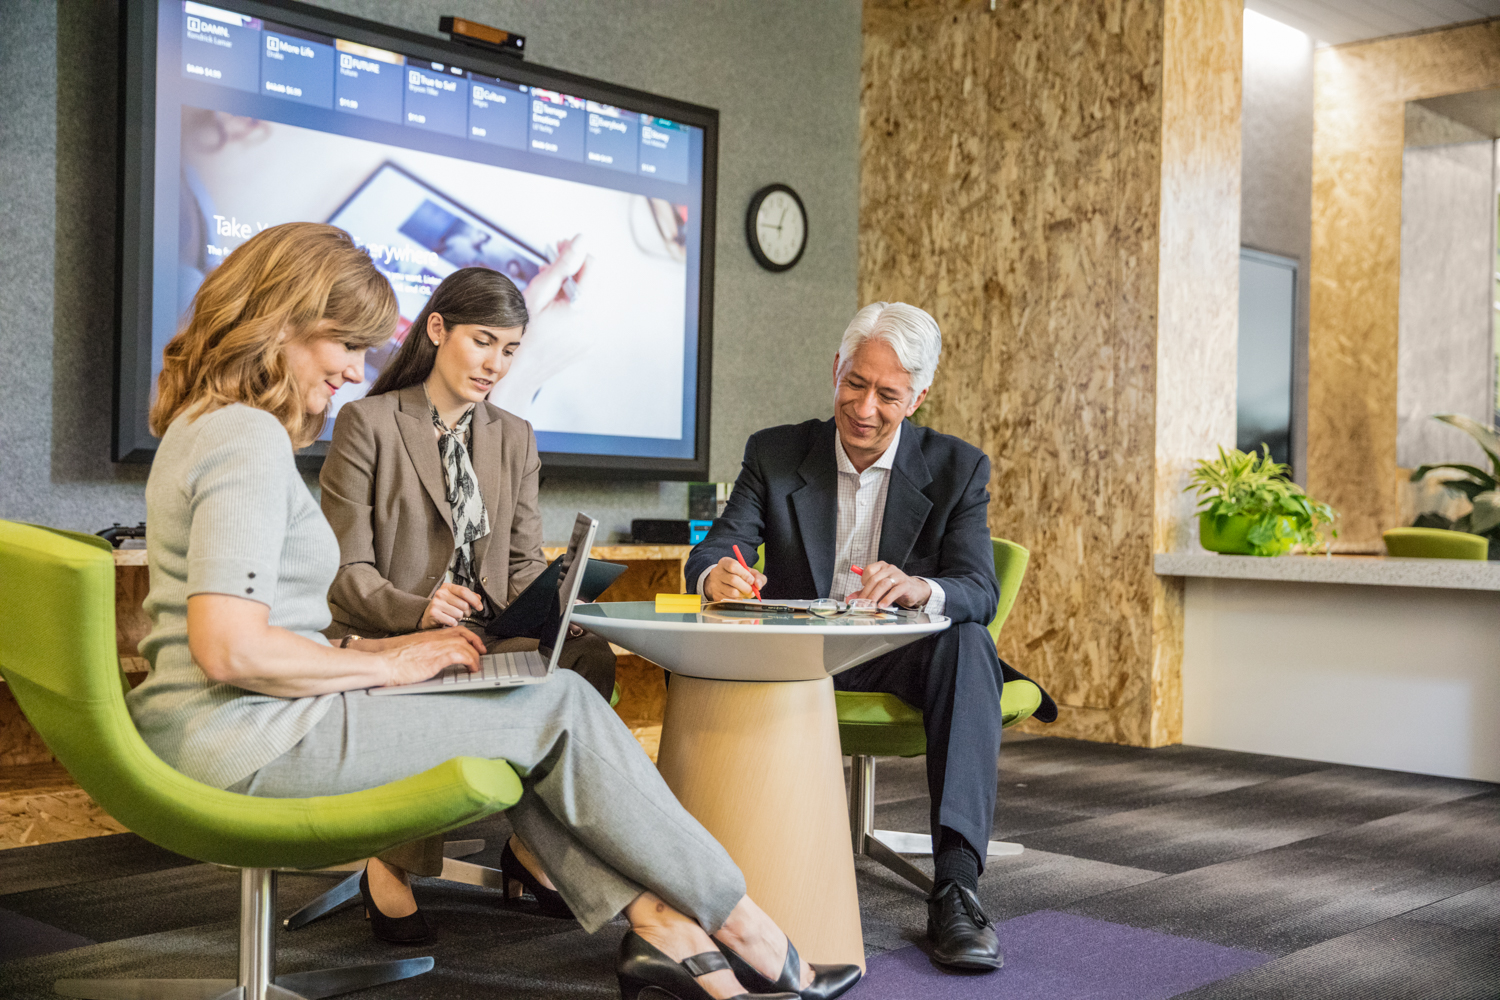 Group of two female and one male office workers brainstorming in informal office setting. Both women are using laptops while the man is writing. Large screen shown in background.